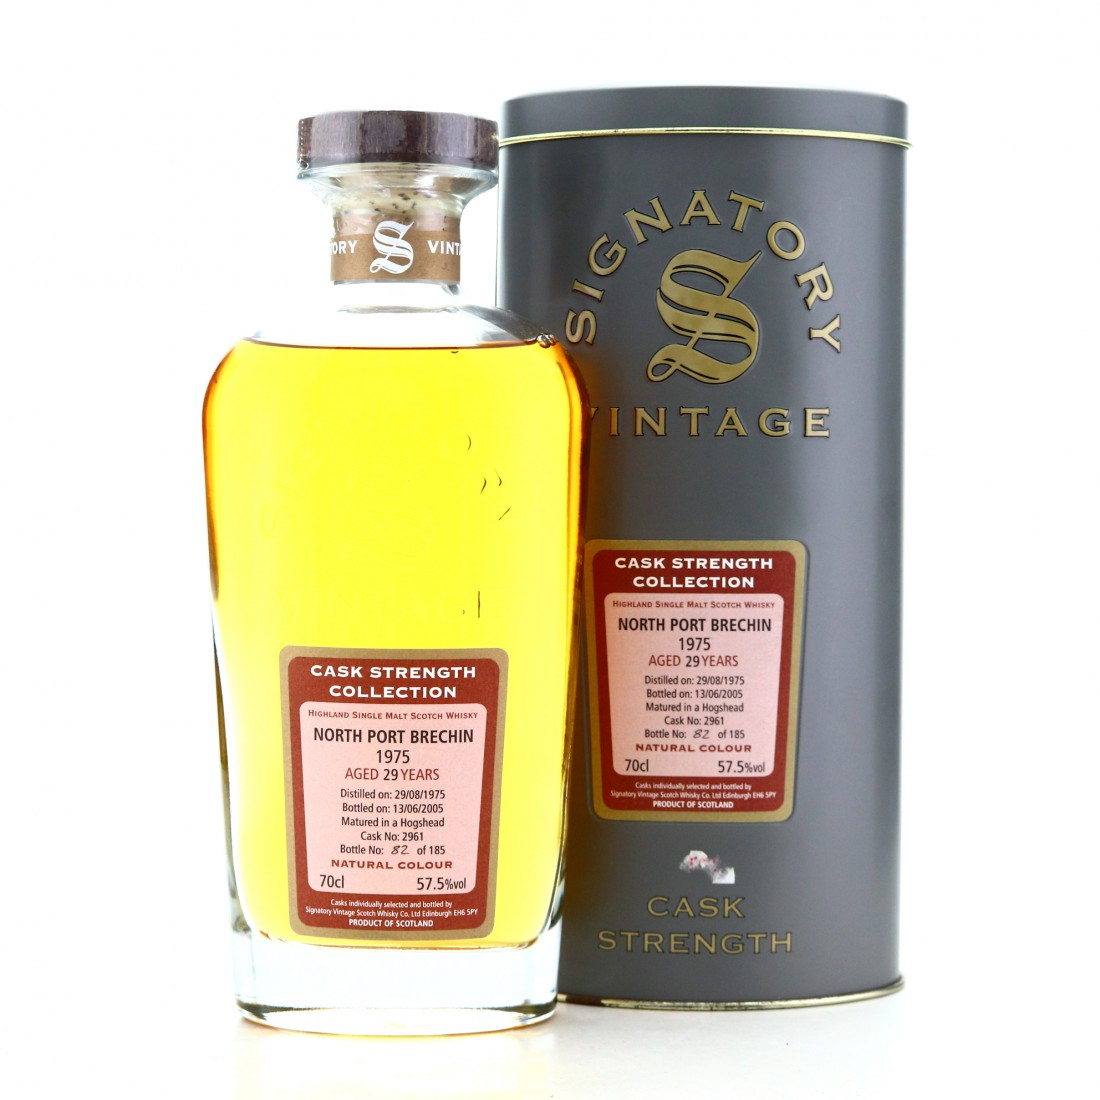 North Port-Brechin 1975 Signatory Vintage 29 Year Old Cask Strength